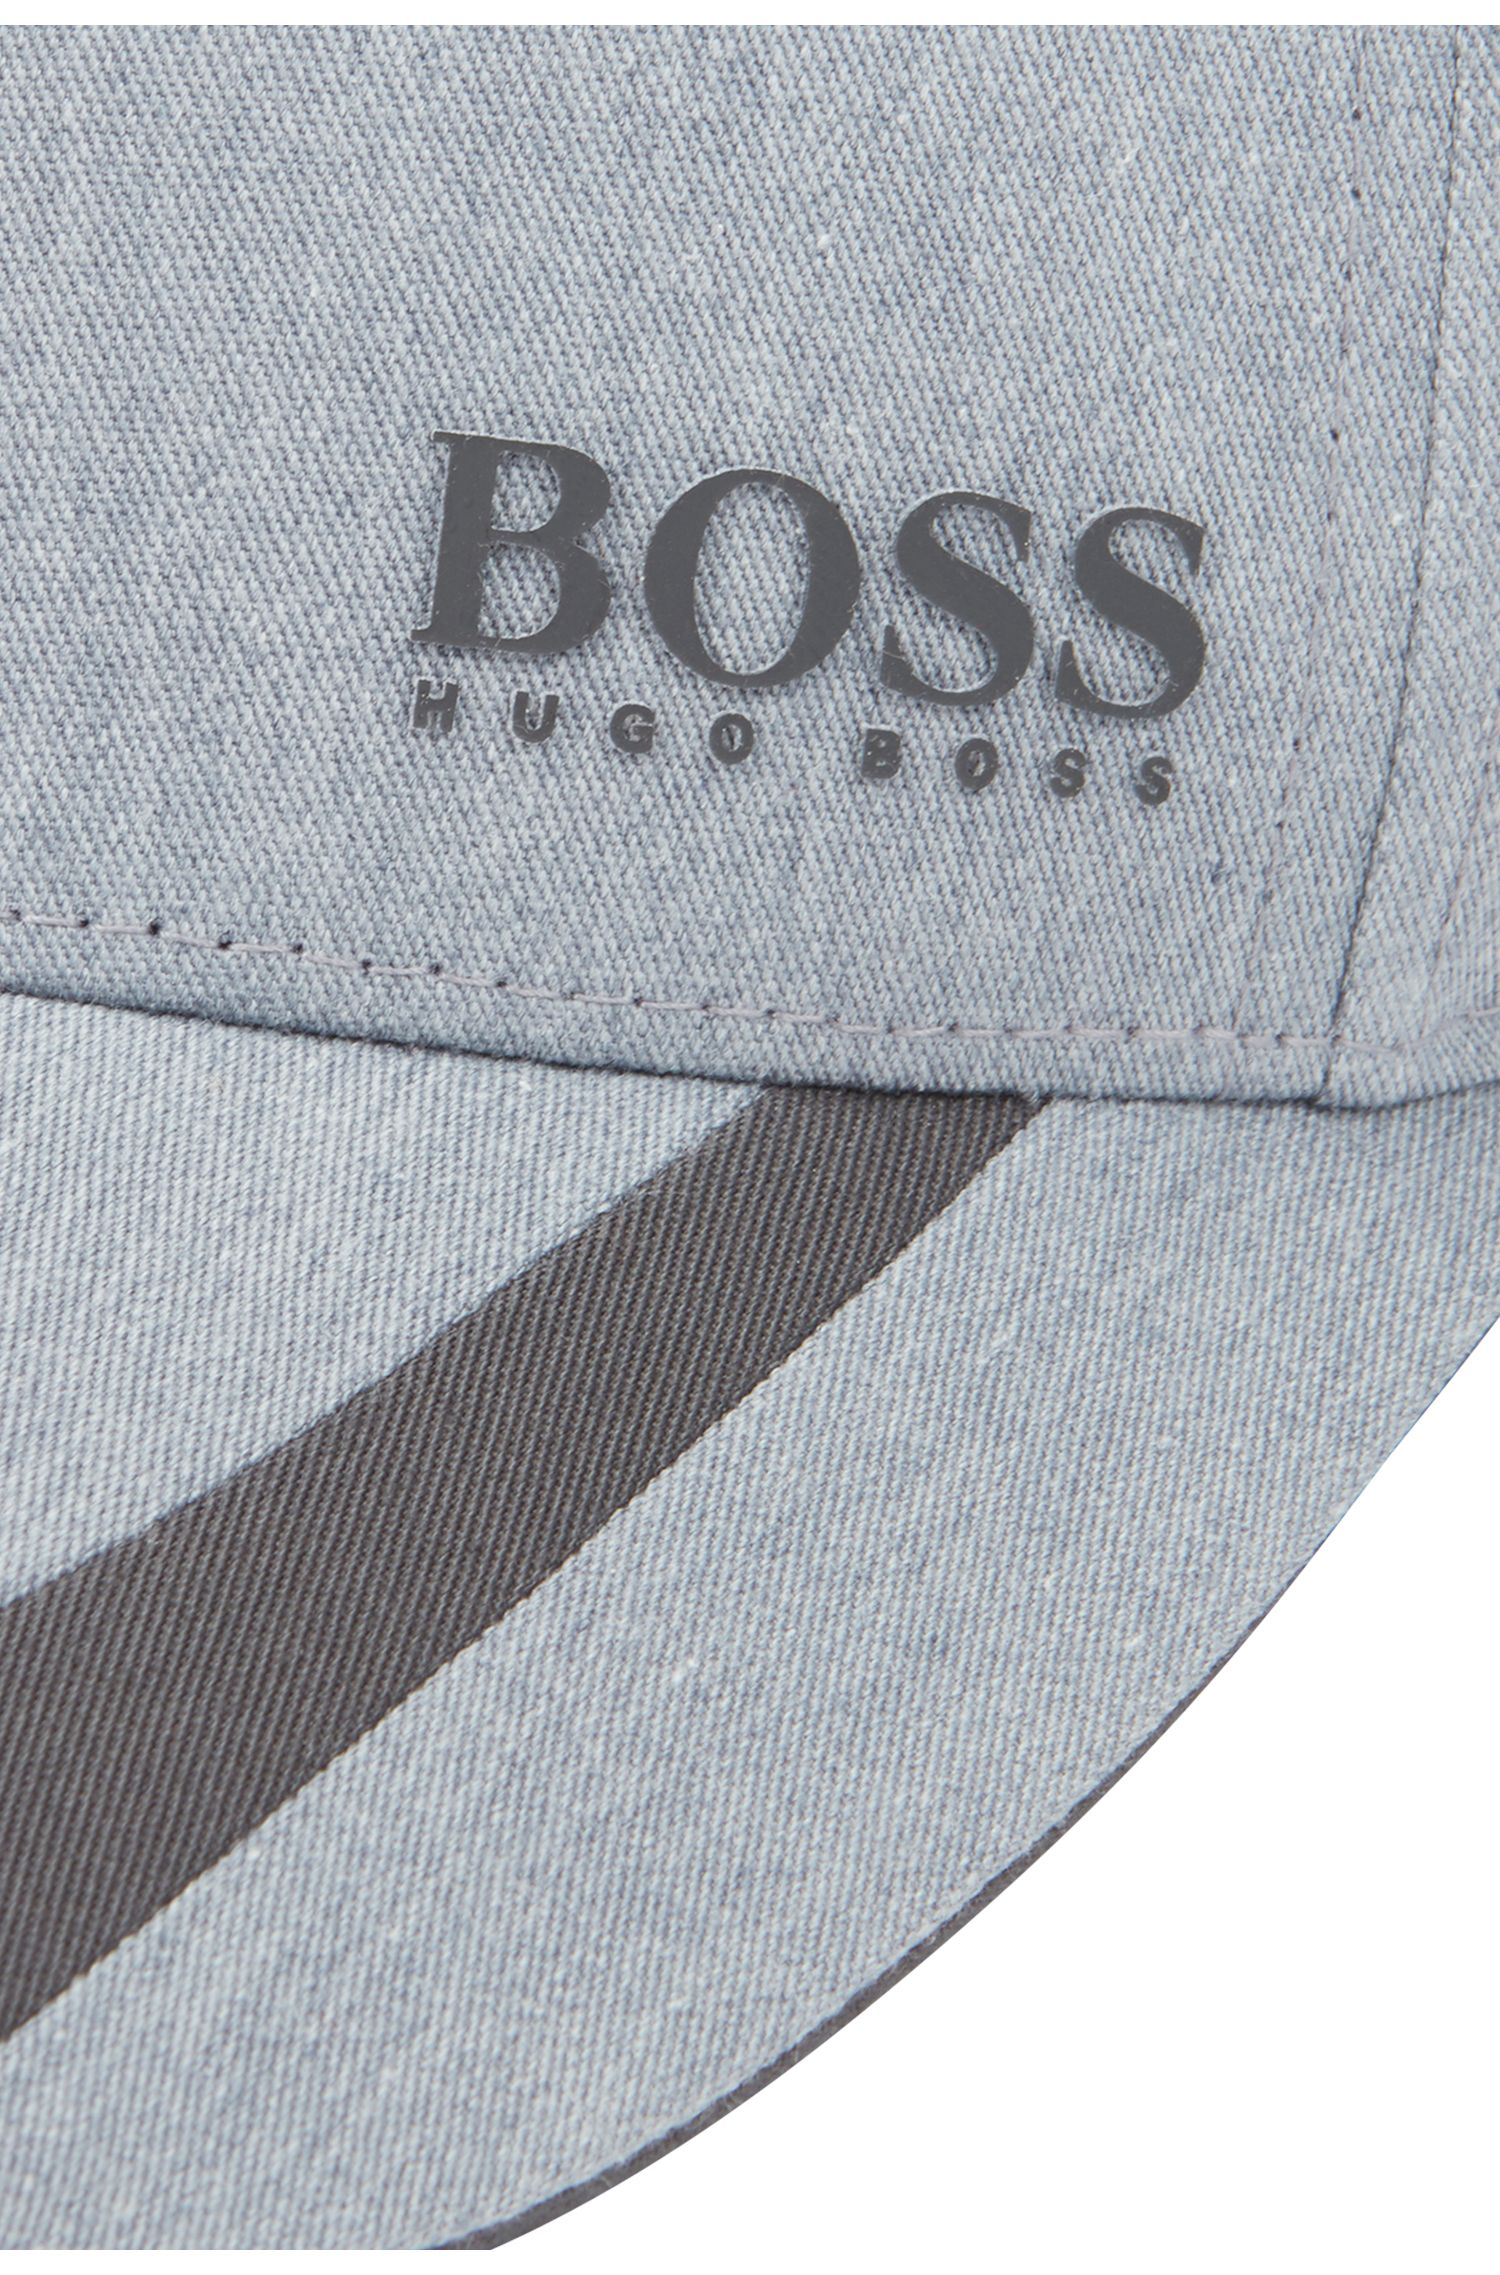 Cap aus Twill in Colour-Block-Optik mit verstellbarem Verschluss, Grau